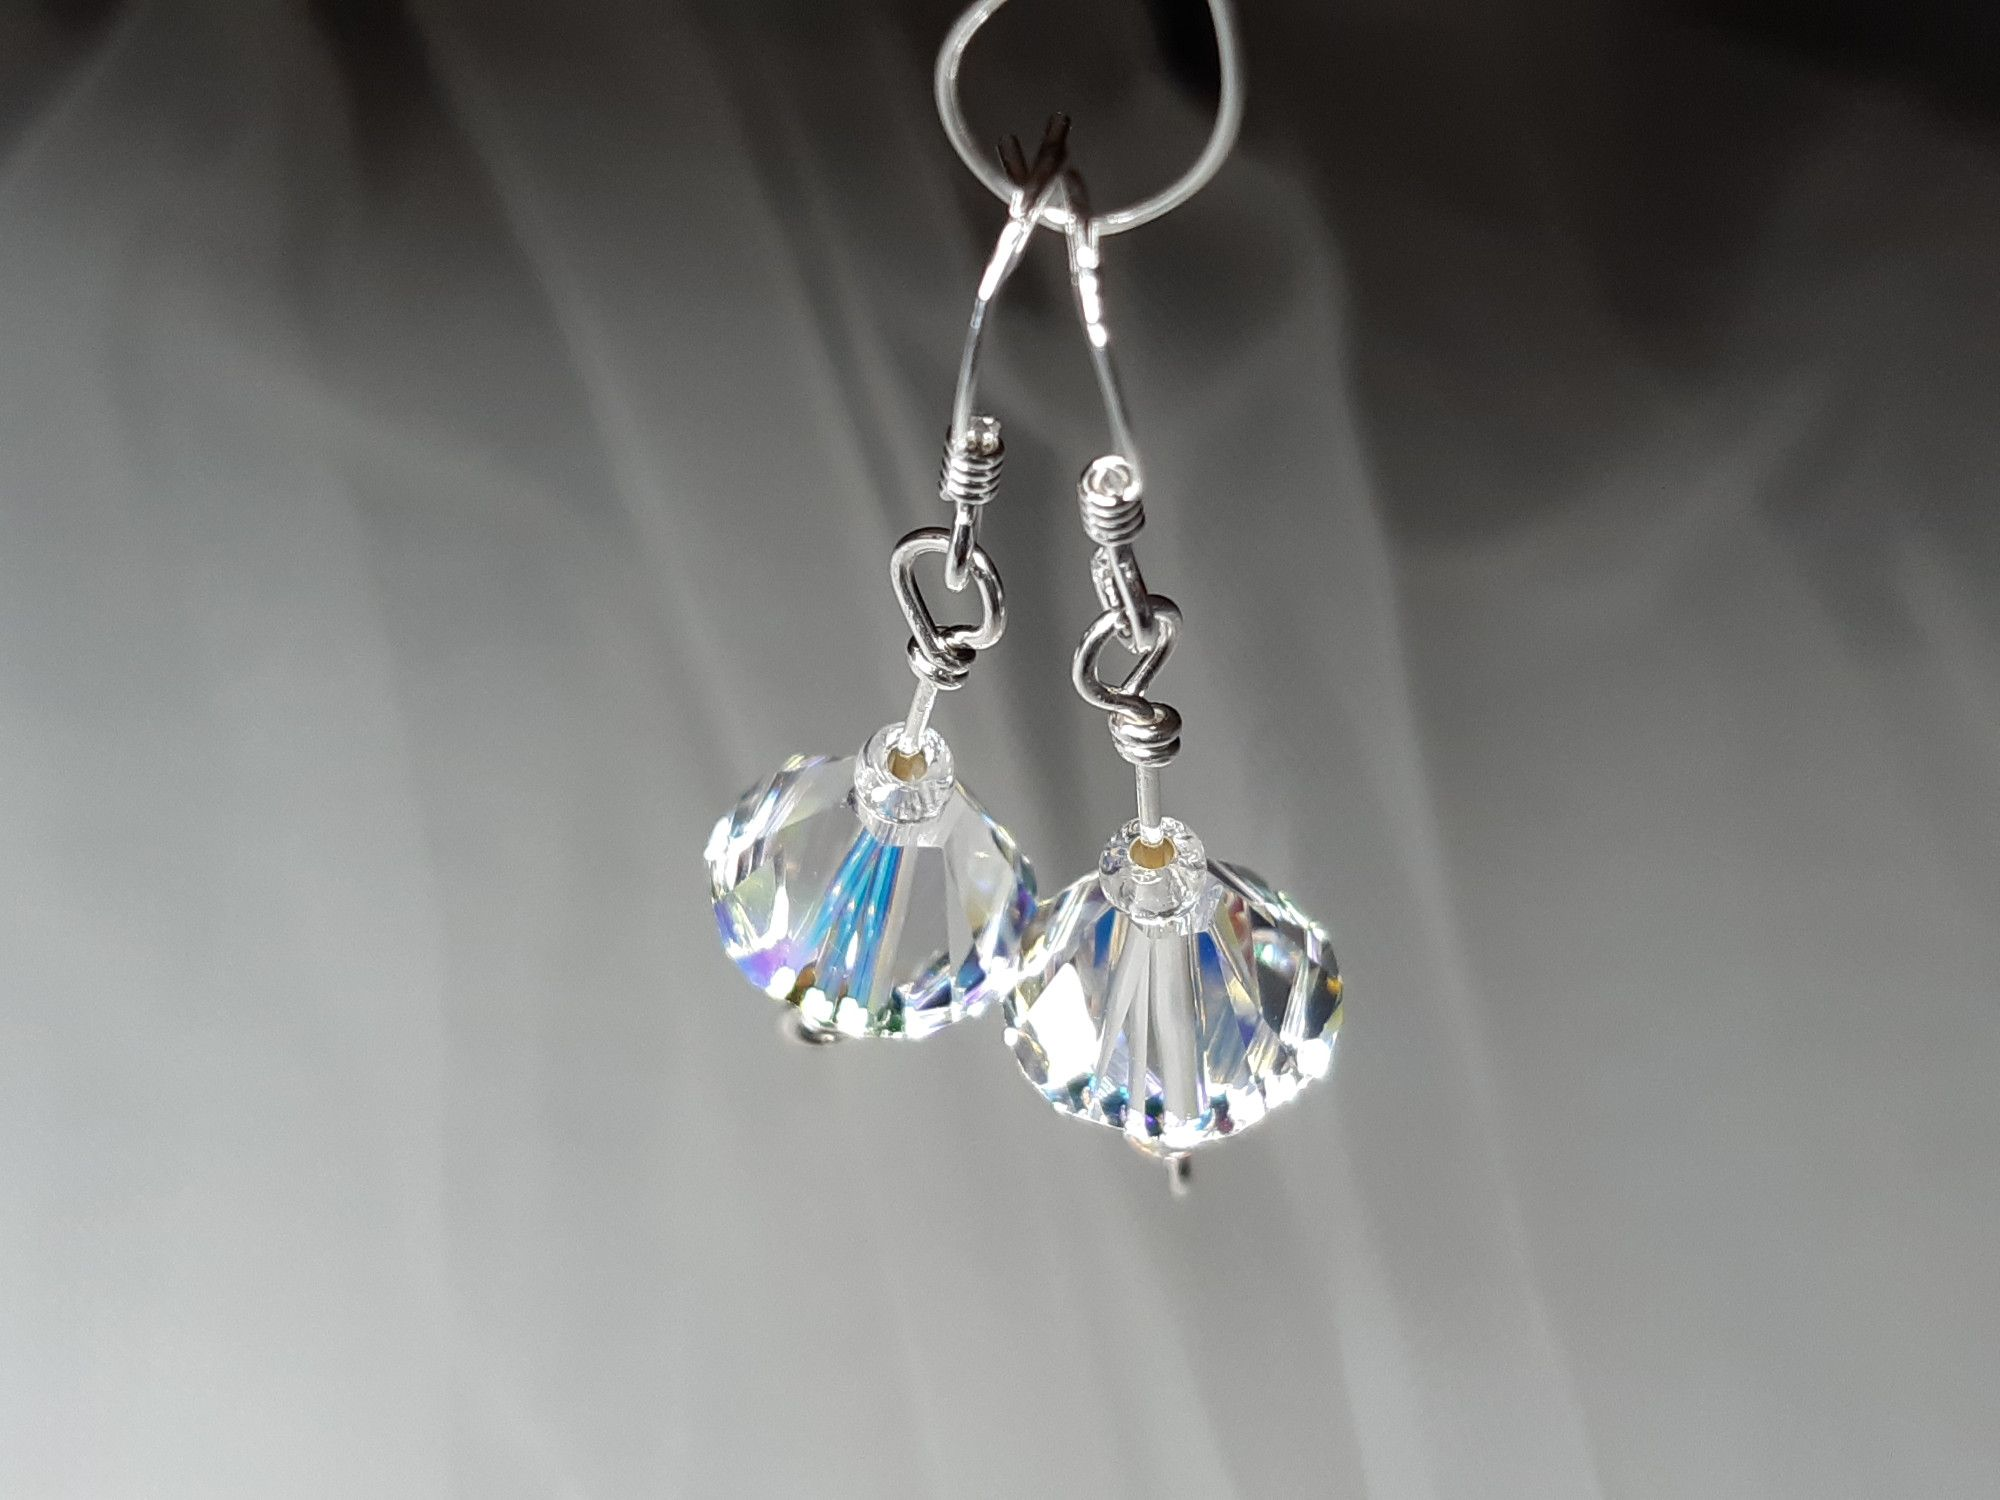 Occasion-wedding-swarovski crystal+sterling silver earrings-3.jpg